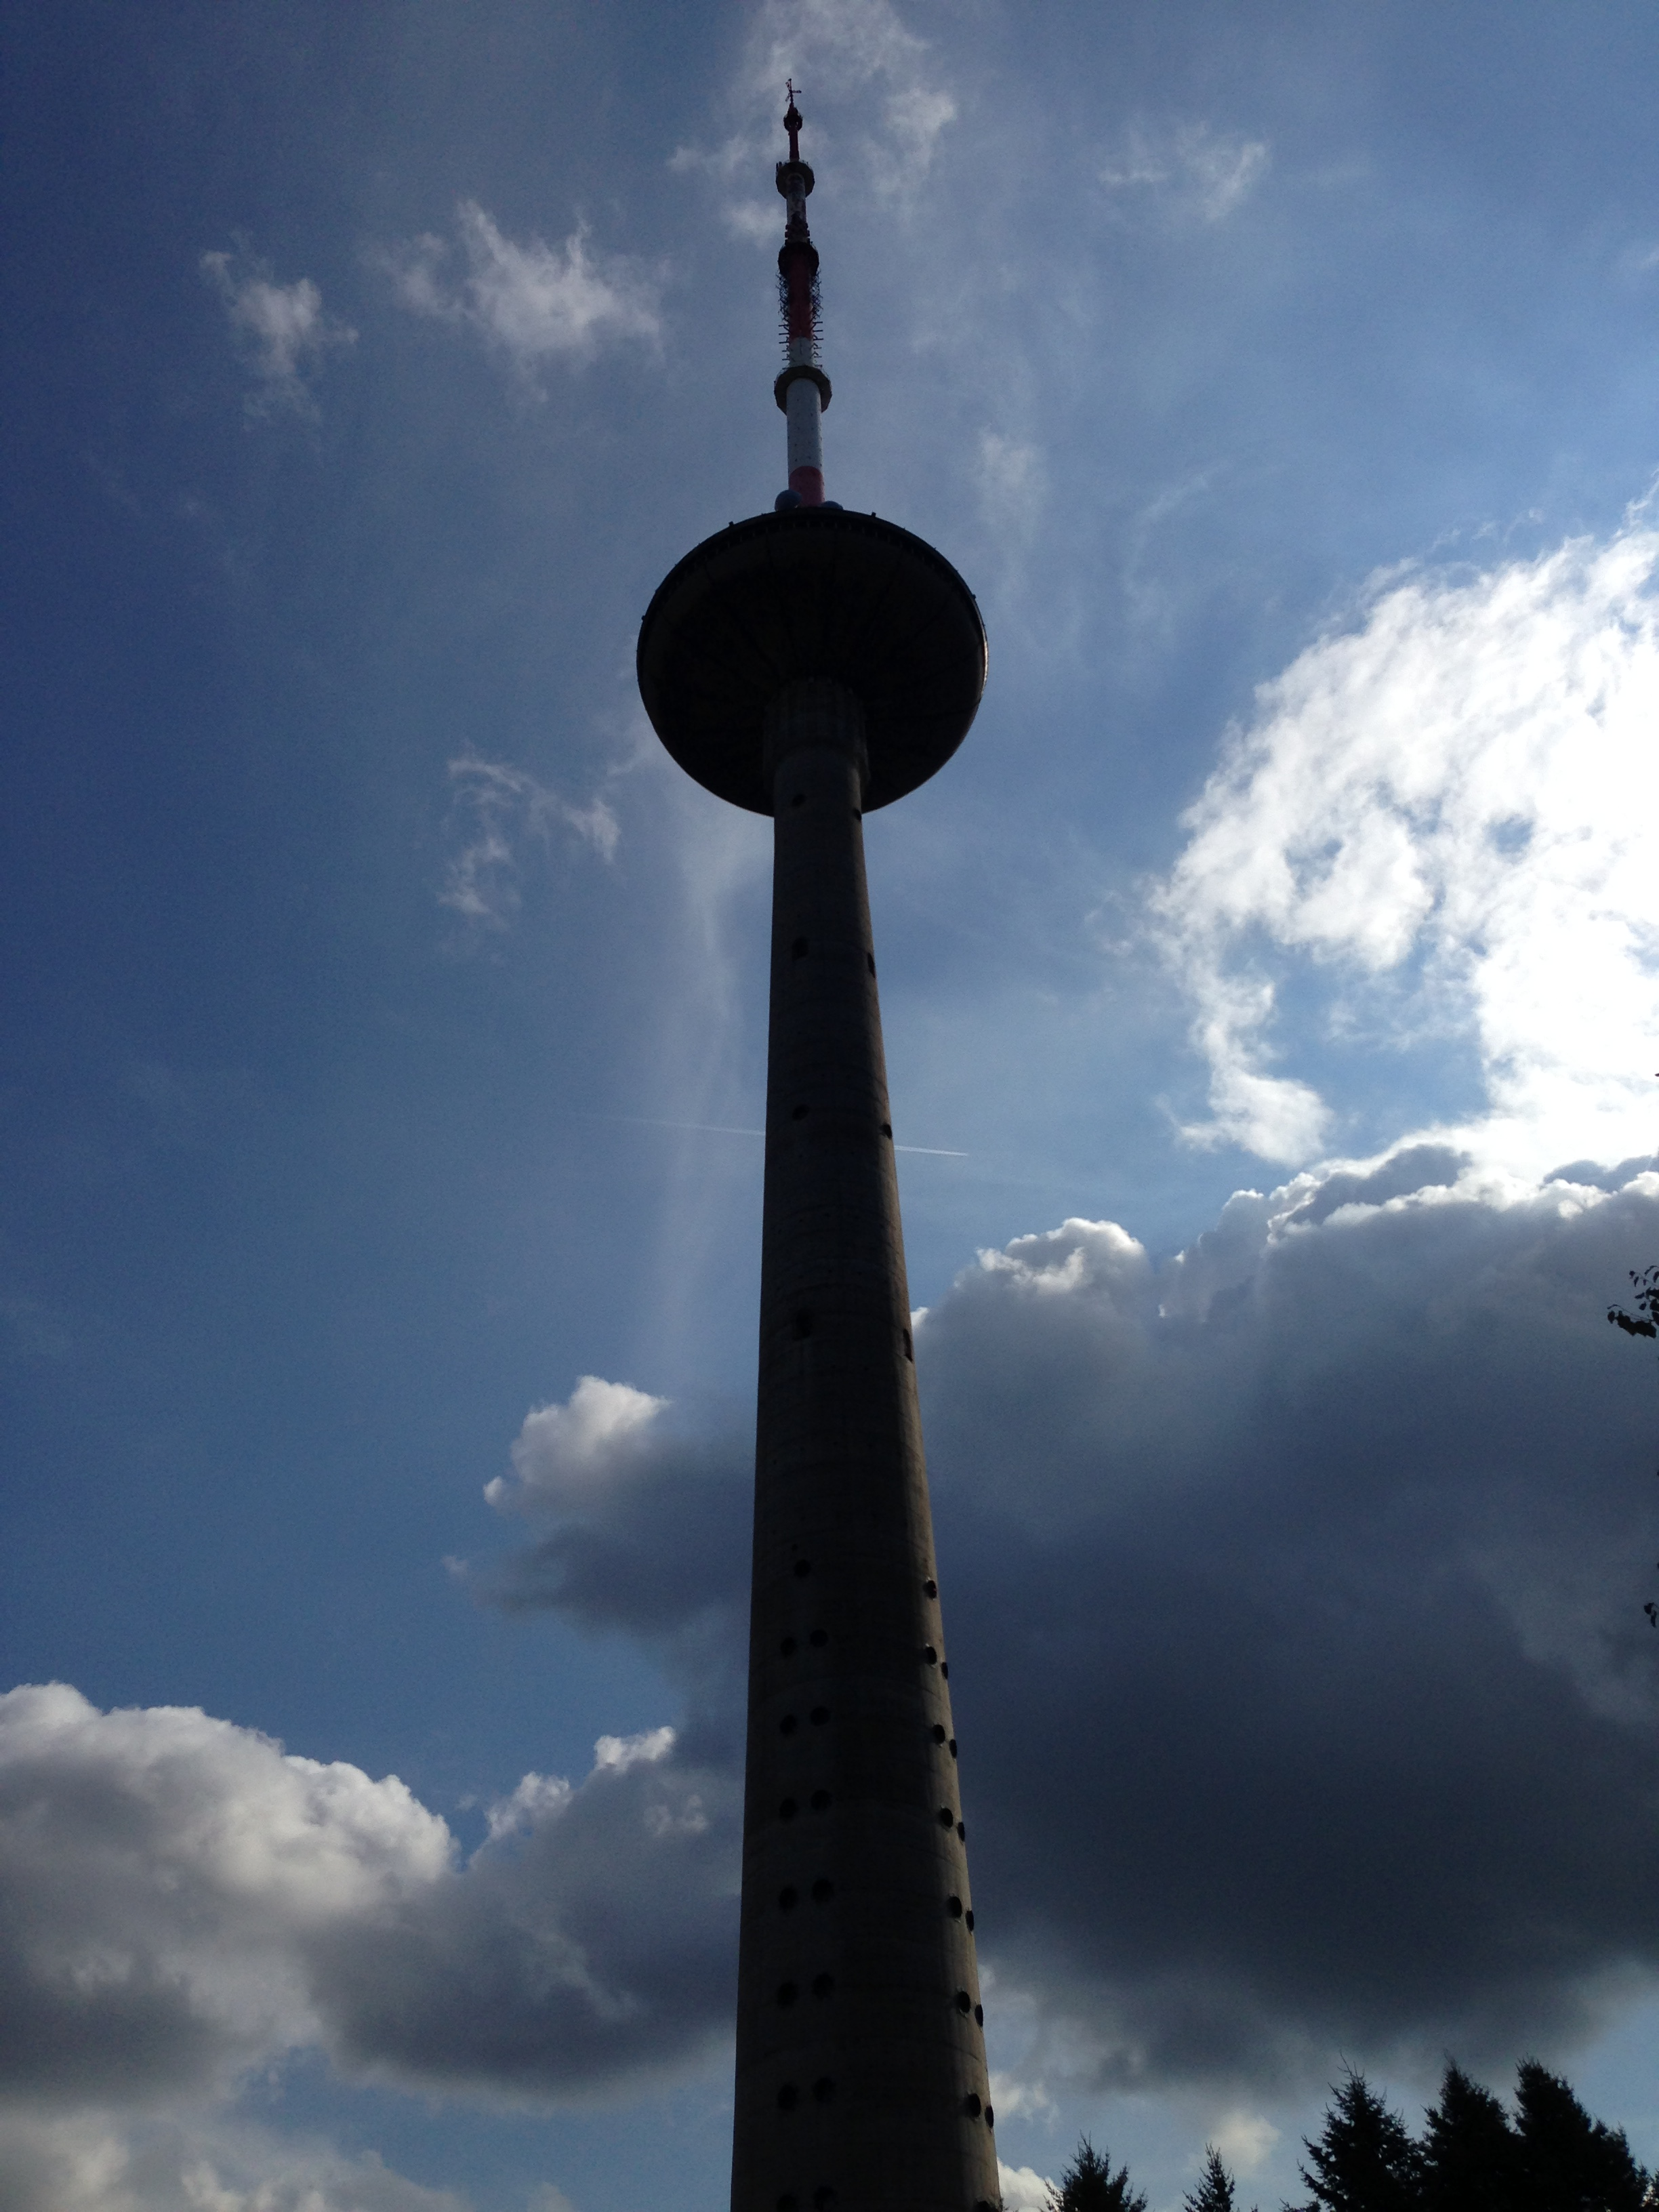 Looking up: At its base, Vilnius TV Tower stands next to broadcasting studios for Lithuanian television.